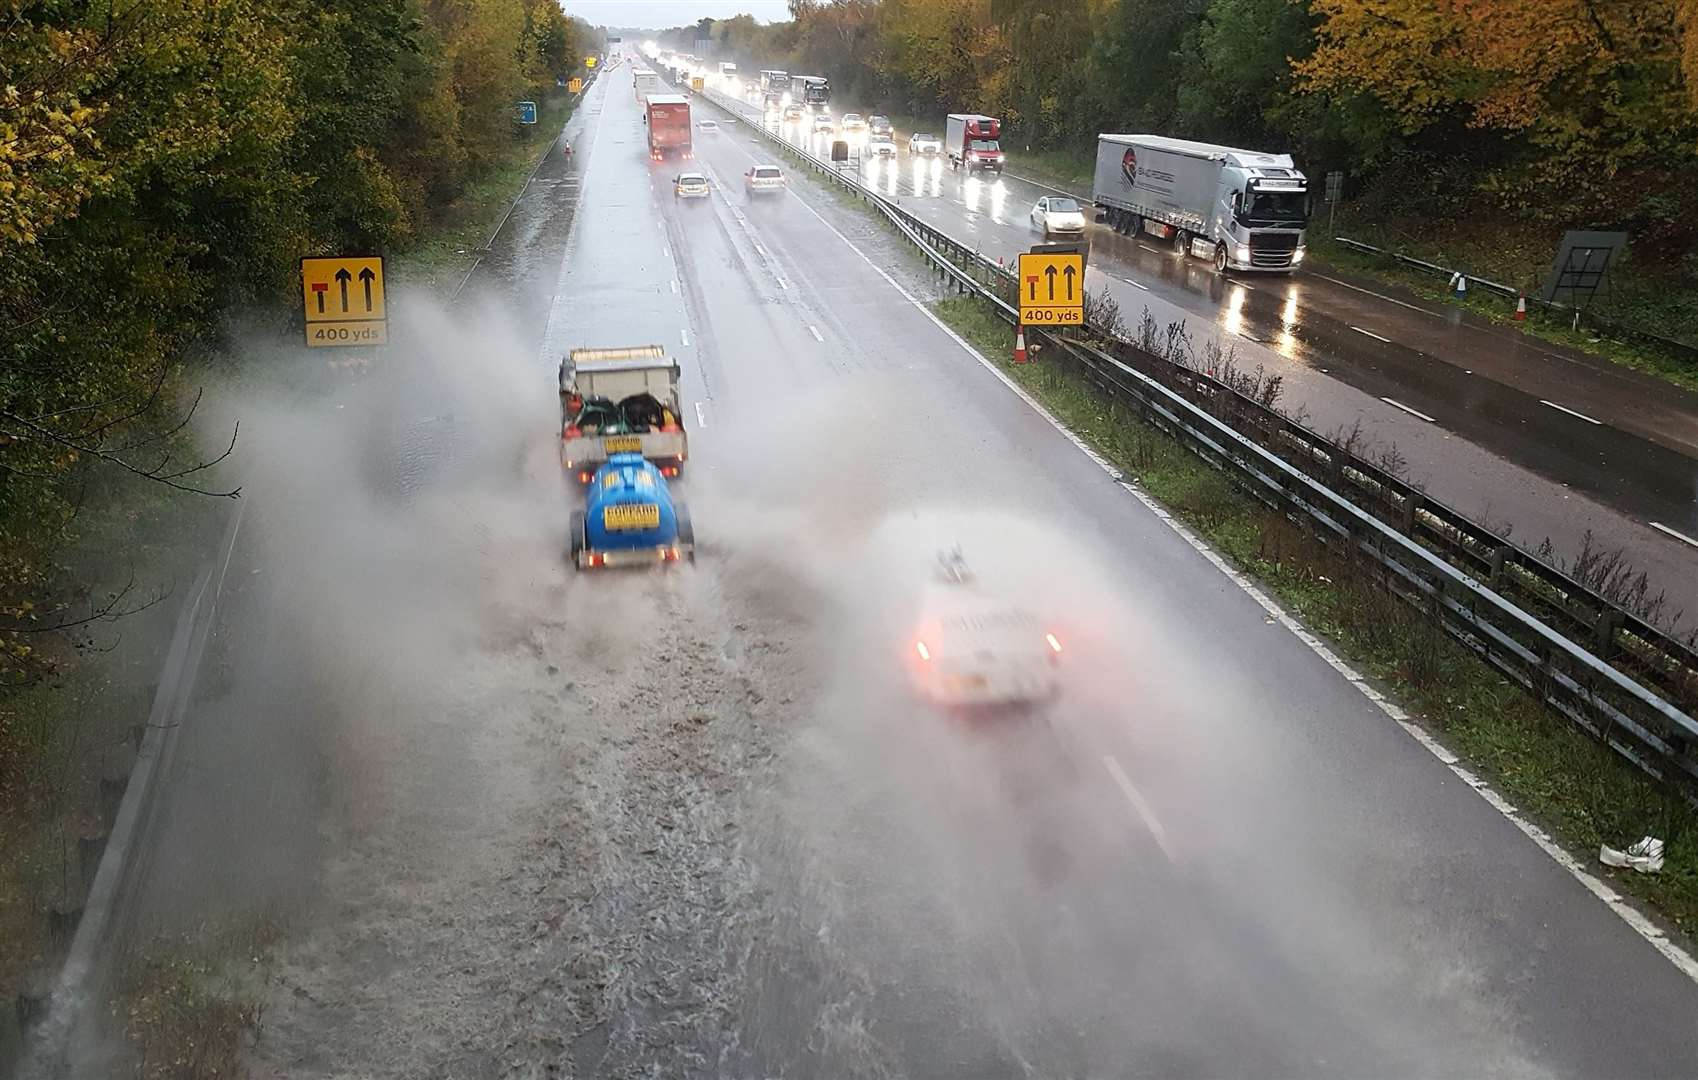 Surface water on the M20 near Ashford